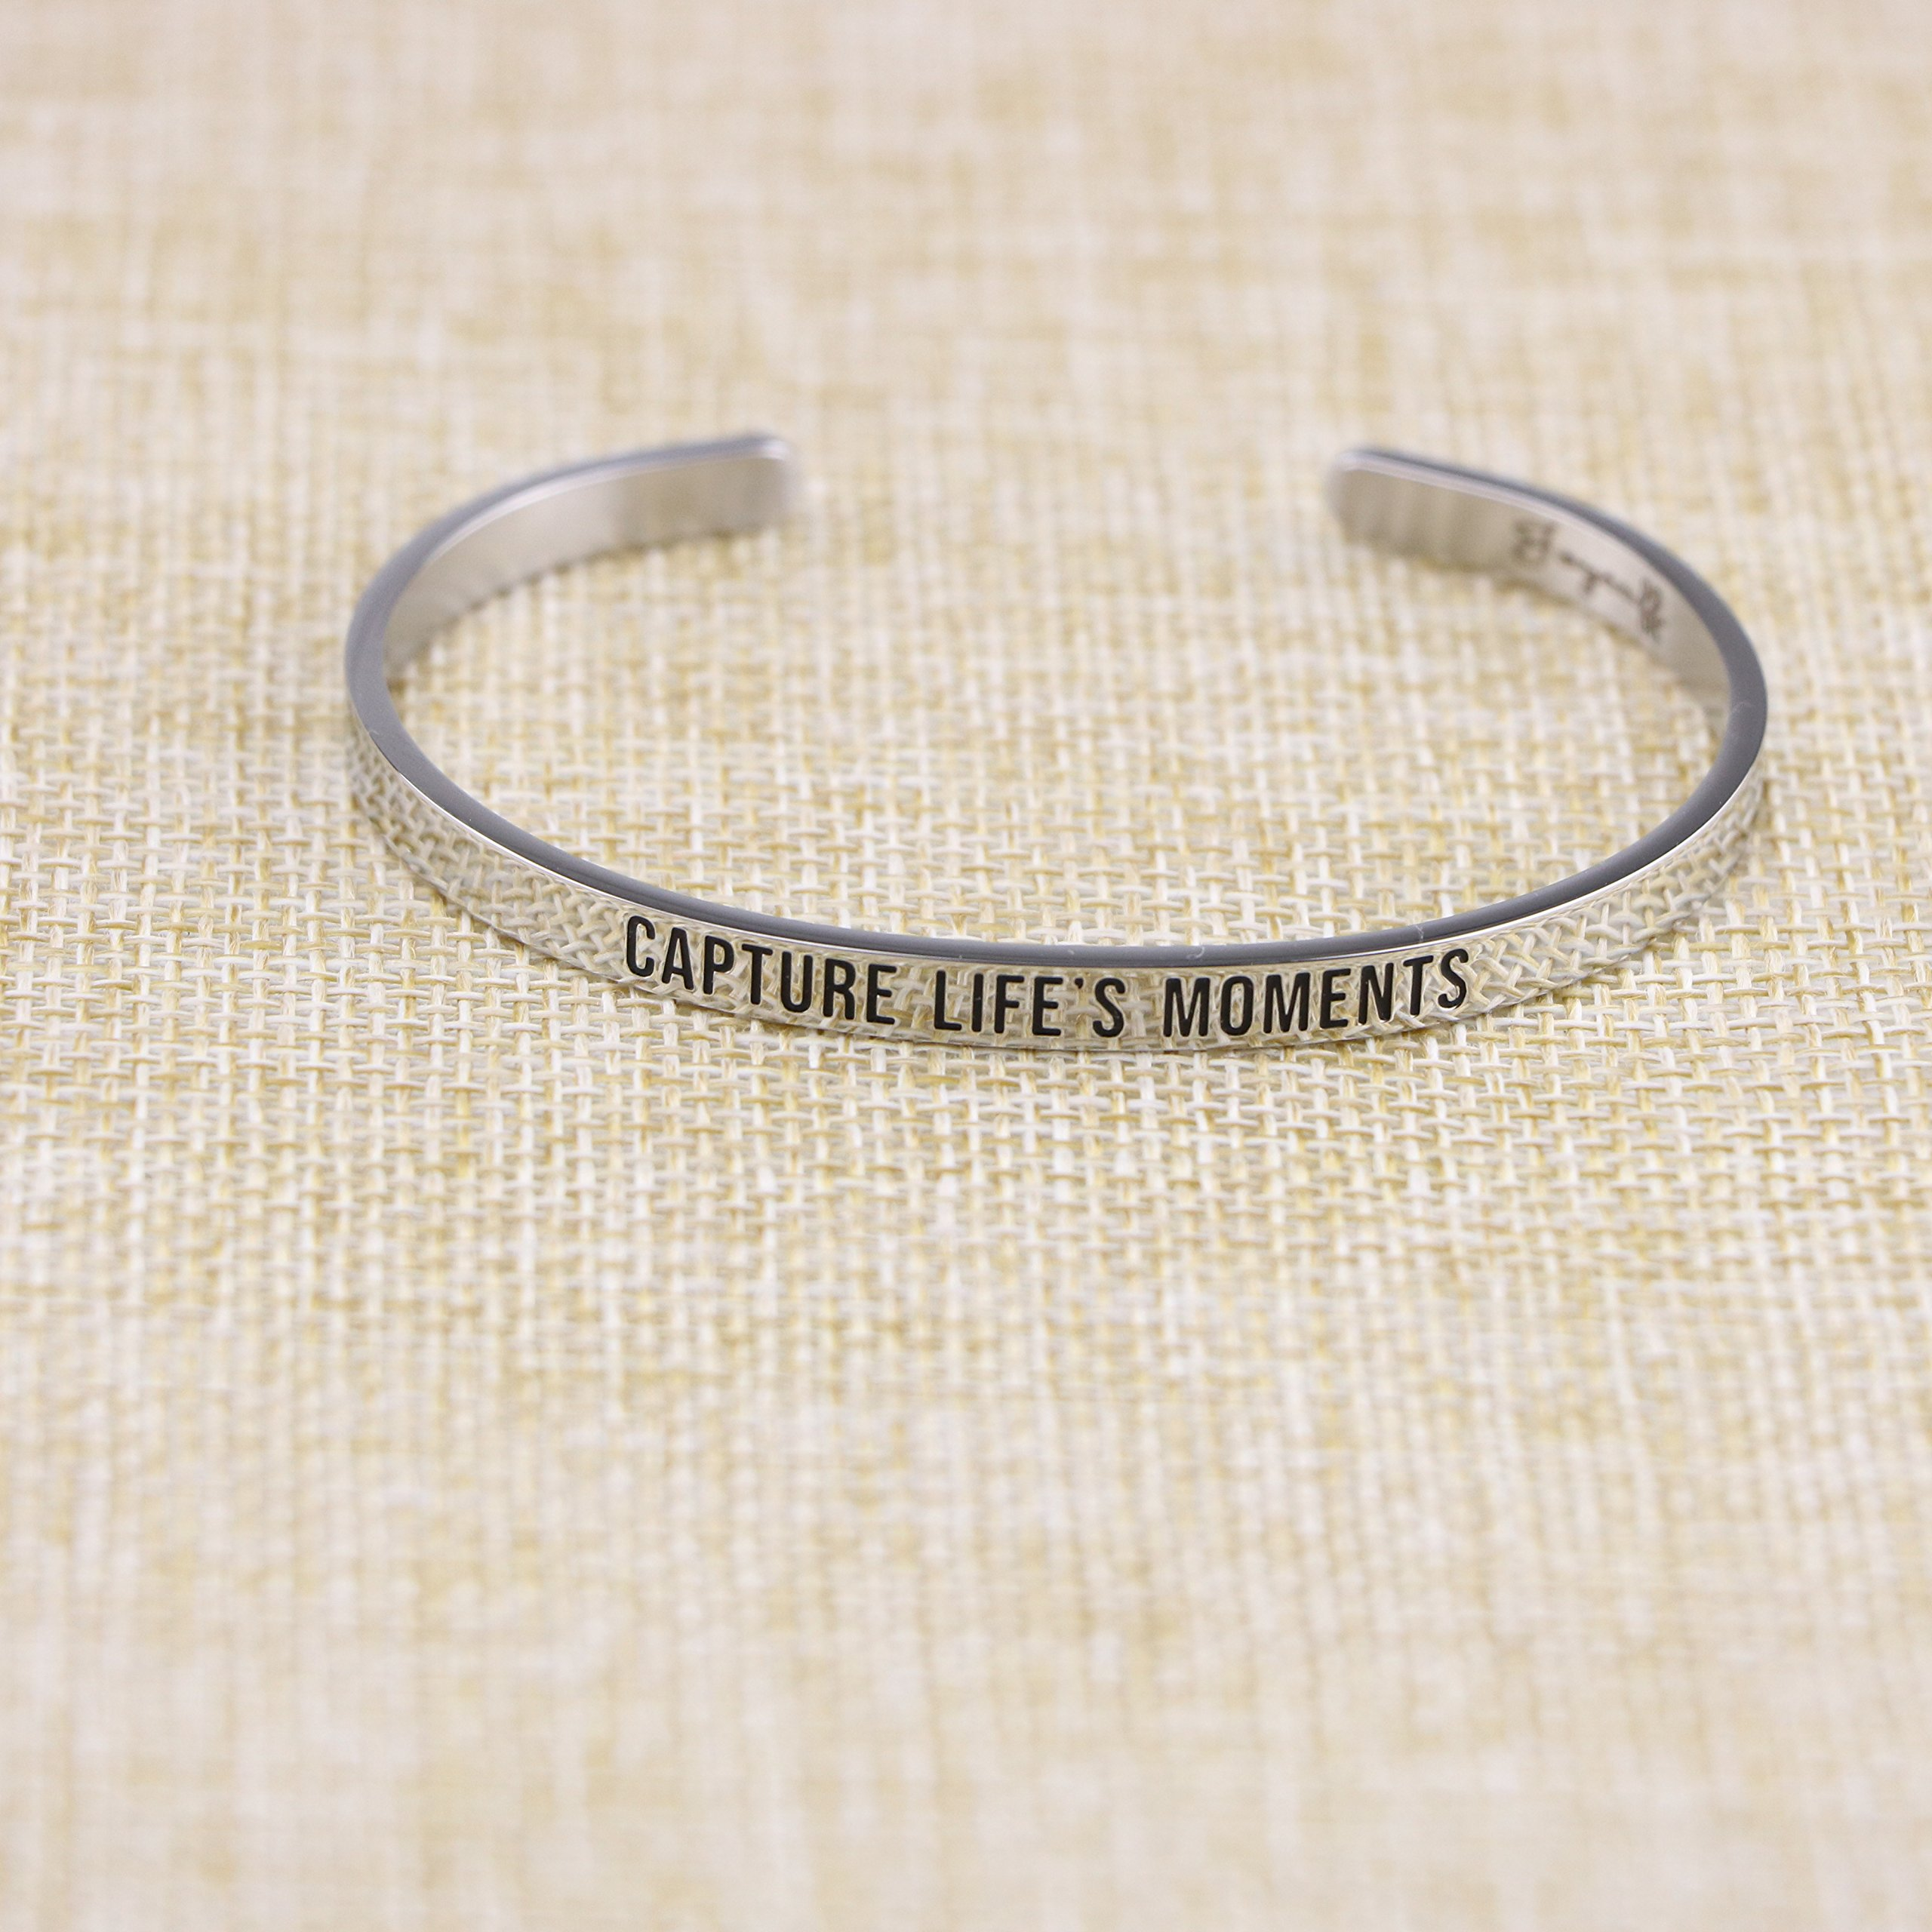 Joycuff New Mom Gift Mantra Cuff Bracelets Photographer Travel Jewelry Capture life's moments by Joycuff (Image #4)